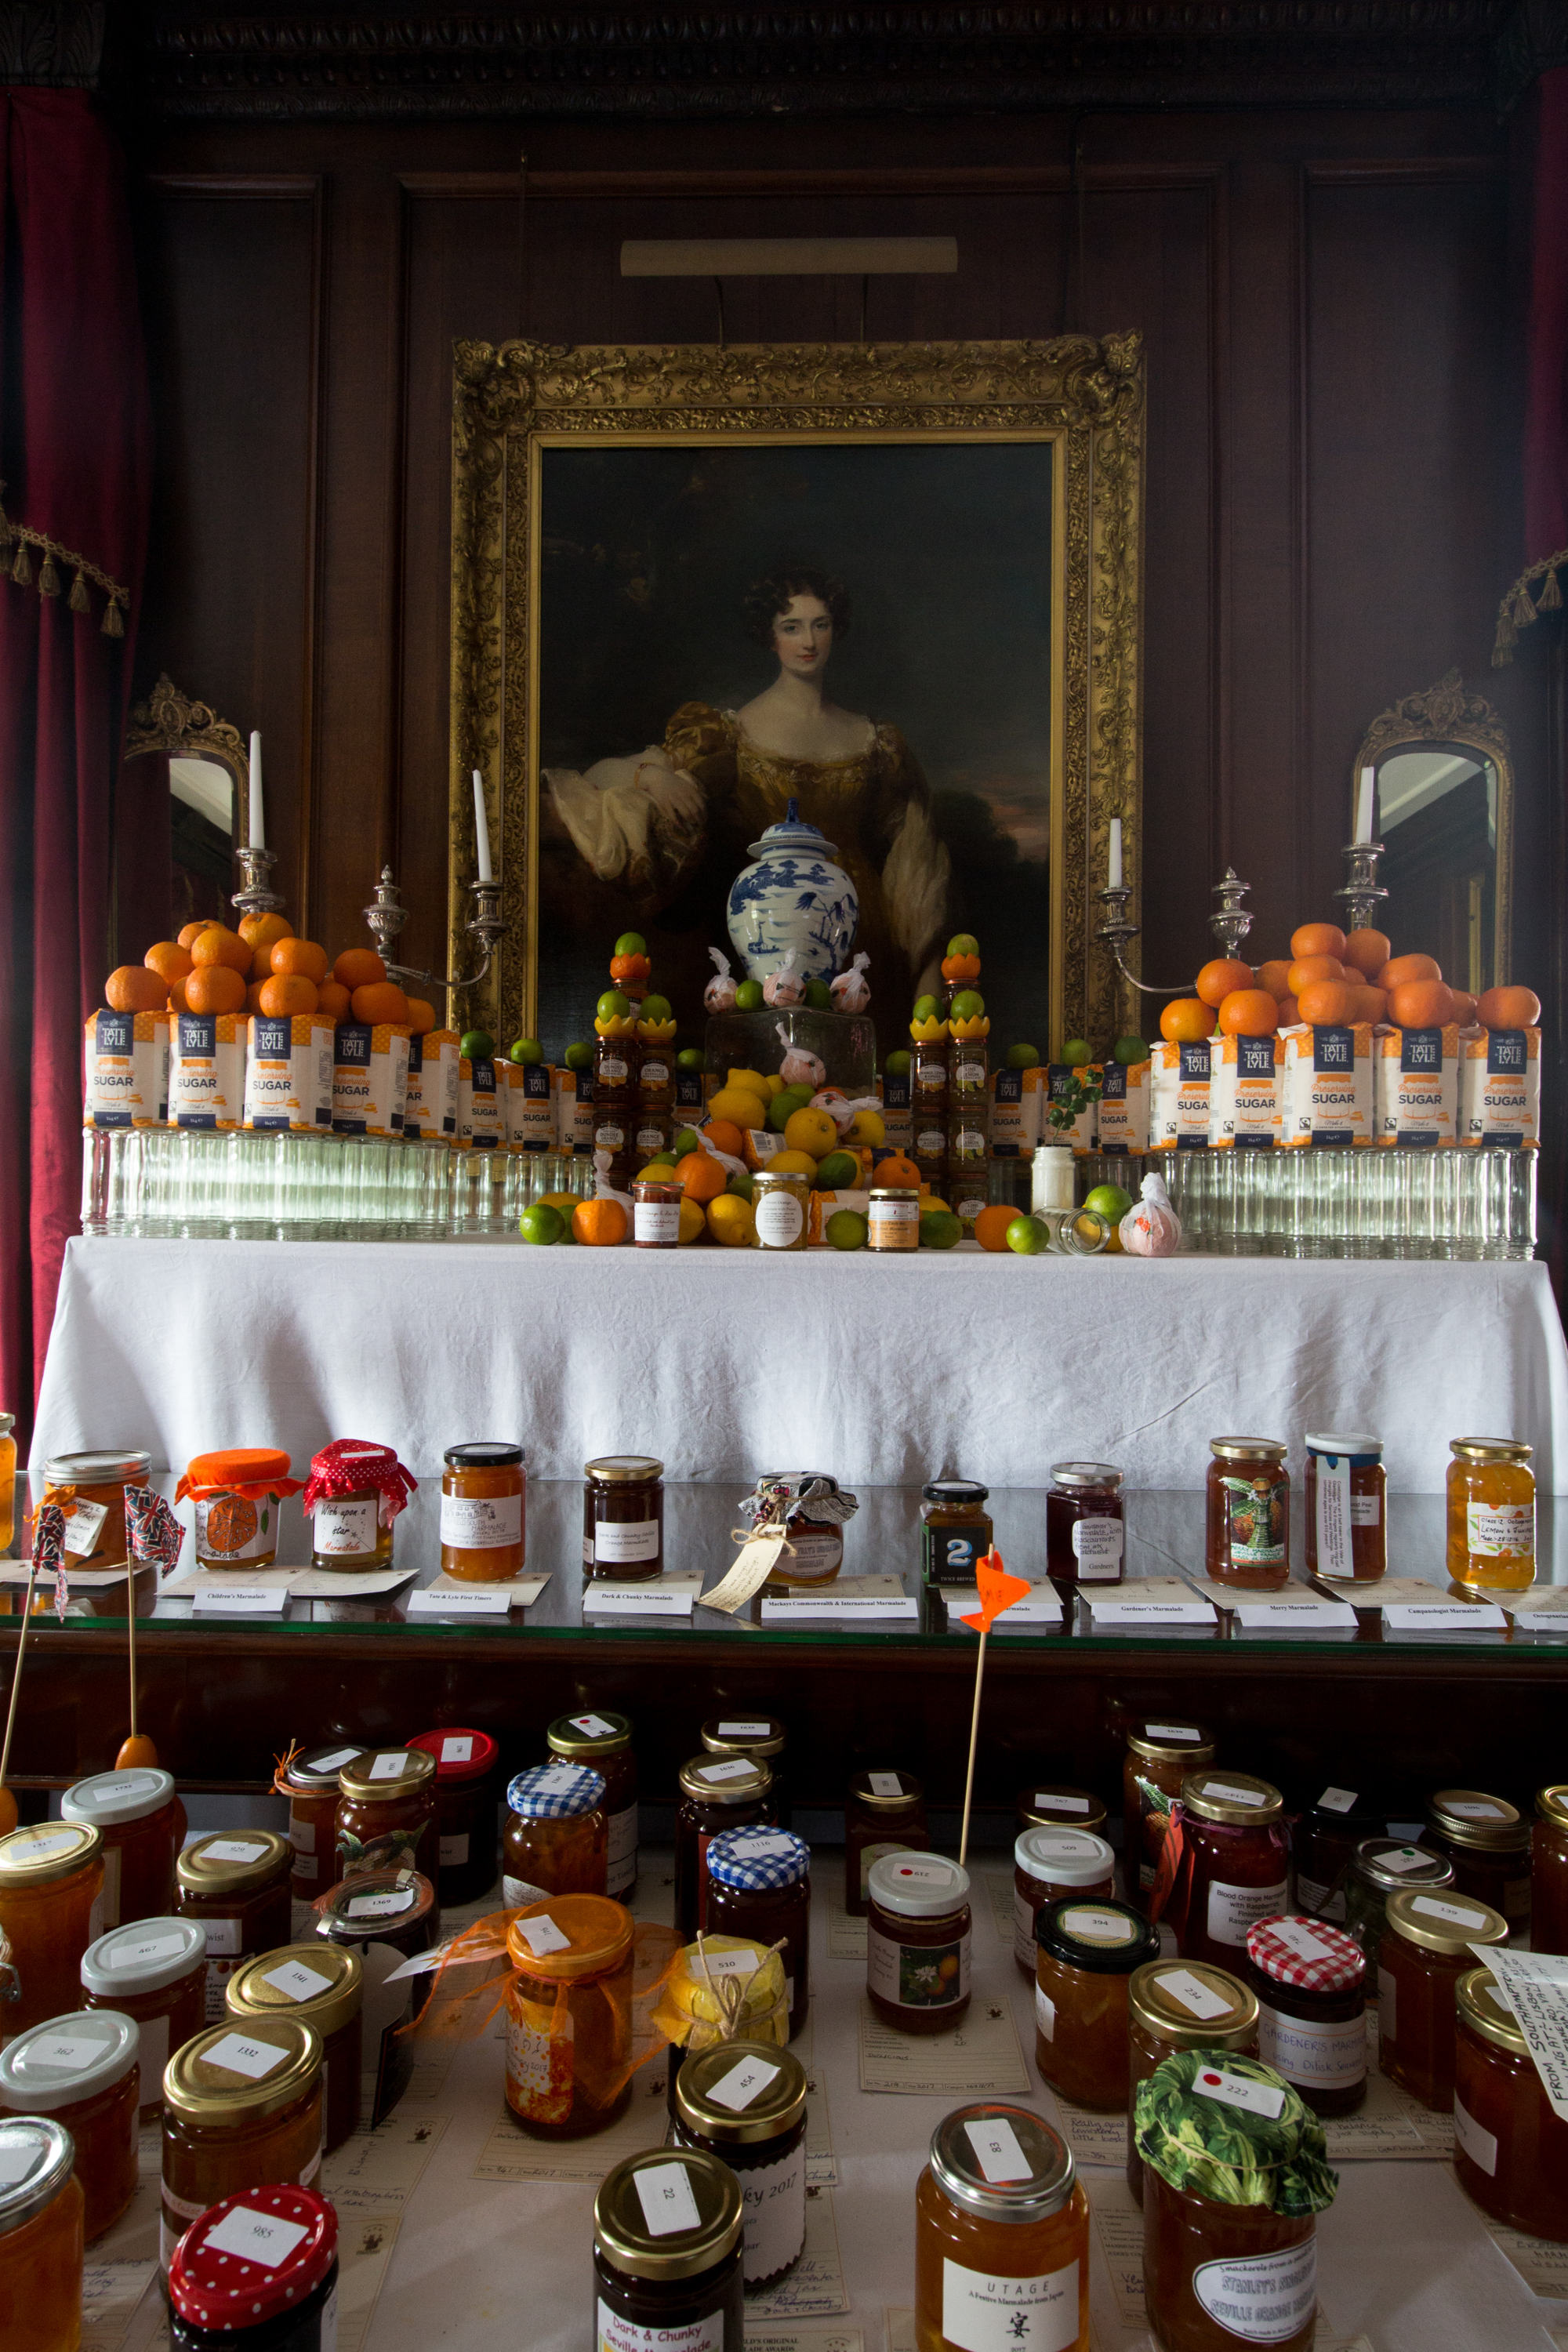 Marmalade winners to be announced in England's Lake District